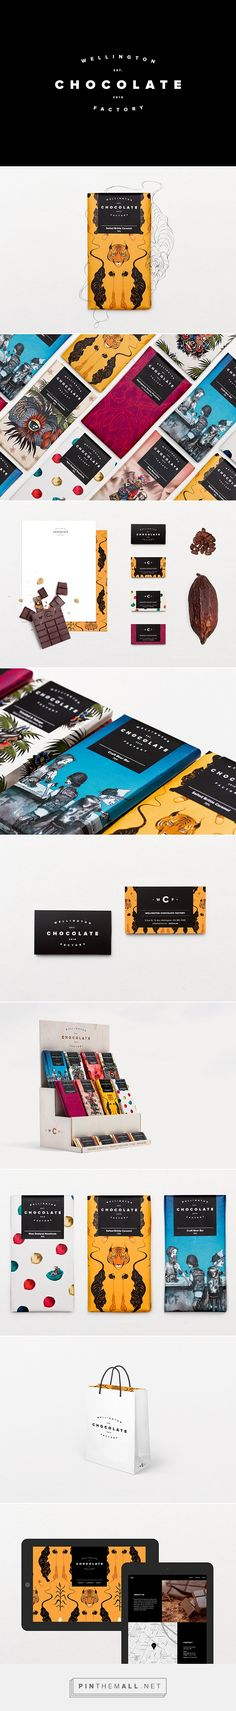 Wellington Chocolate Factory Branding and Packaging by Gina Kiel | Fivestar Branding Agency – Design and Branding Agency & Inspiration Gallery